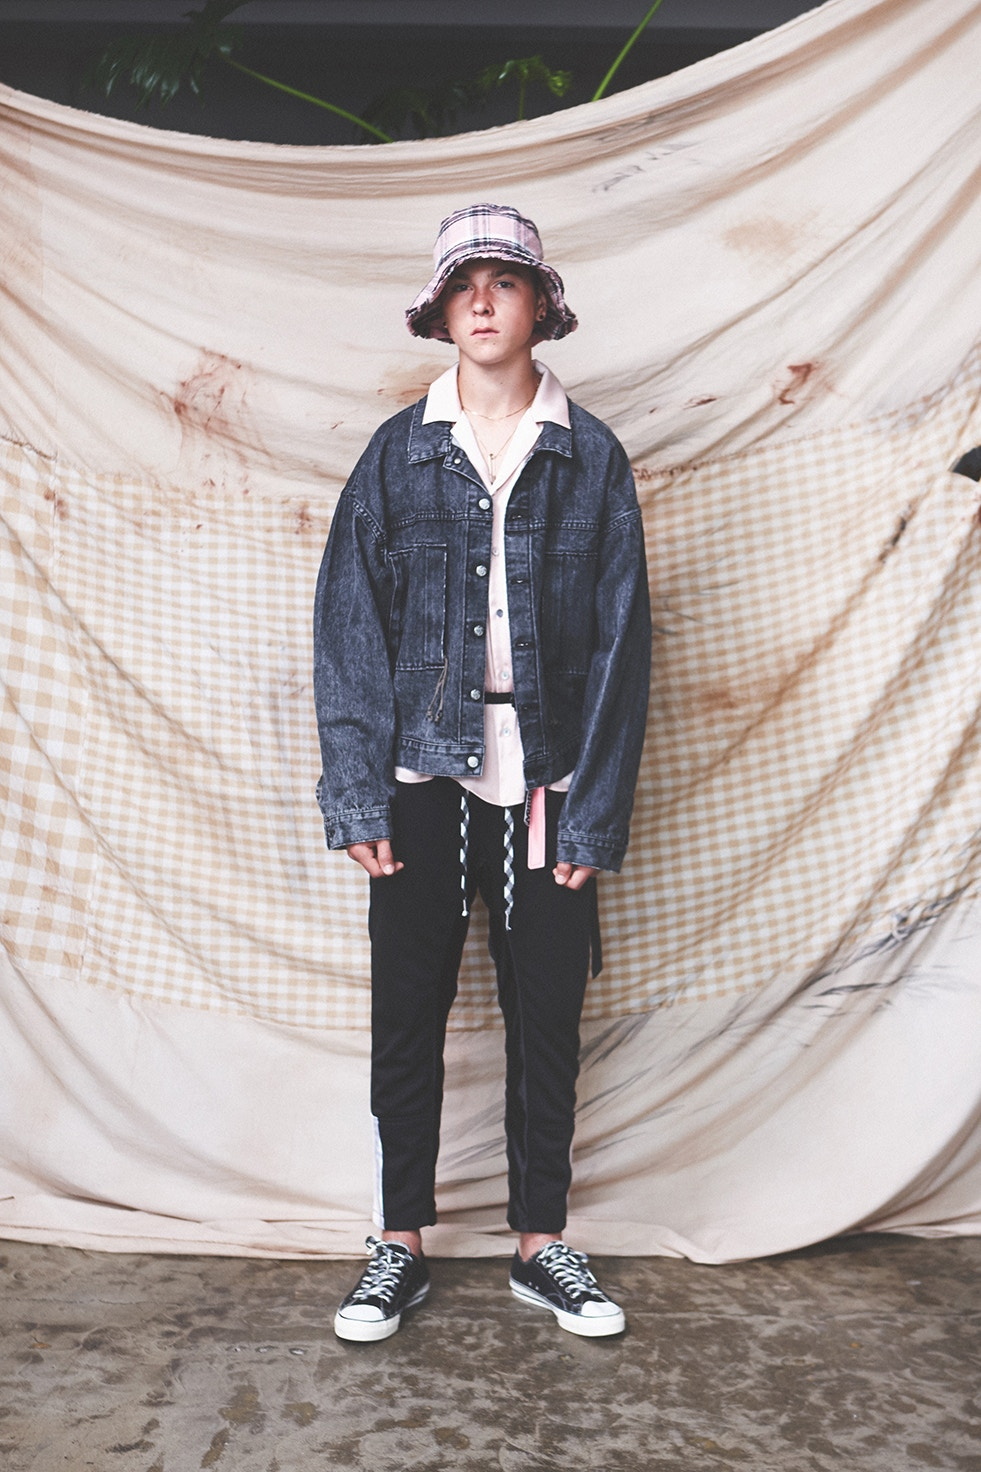 ystrdys-tmrrw-spring-summer-2018-lookbook-10.jpg